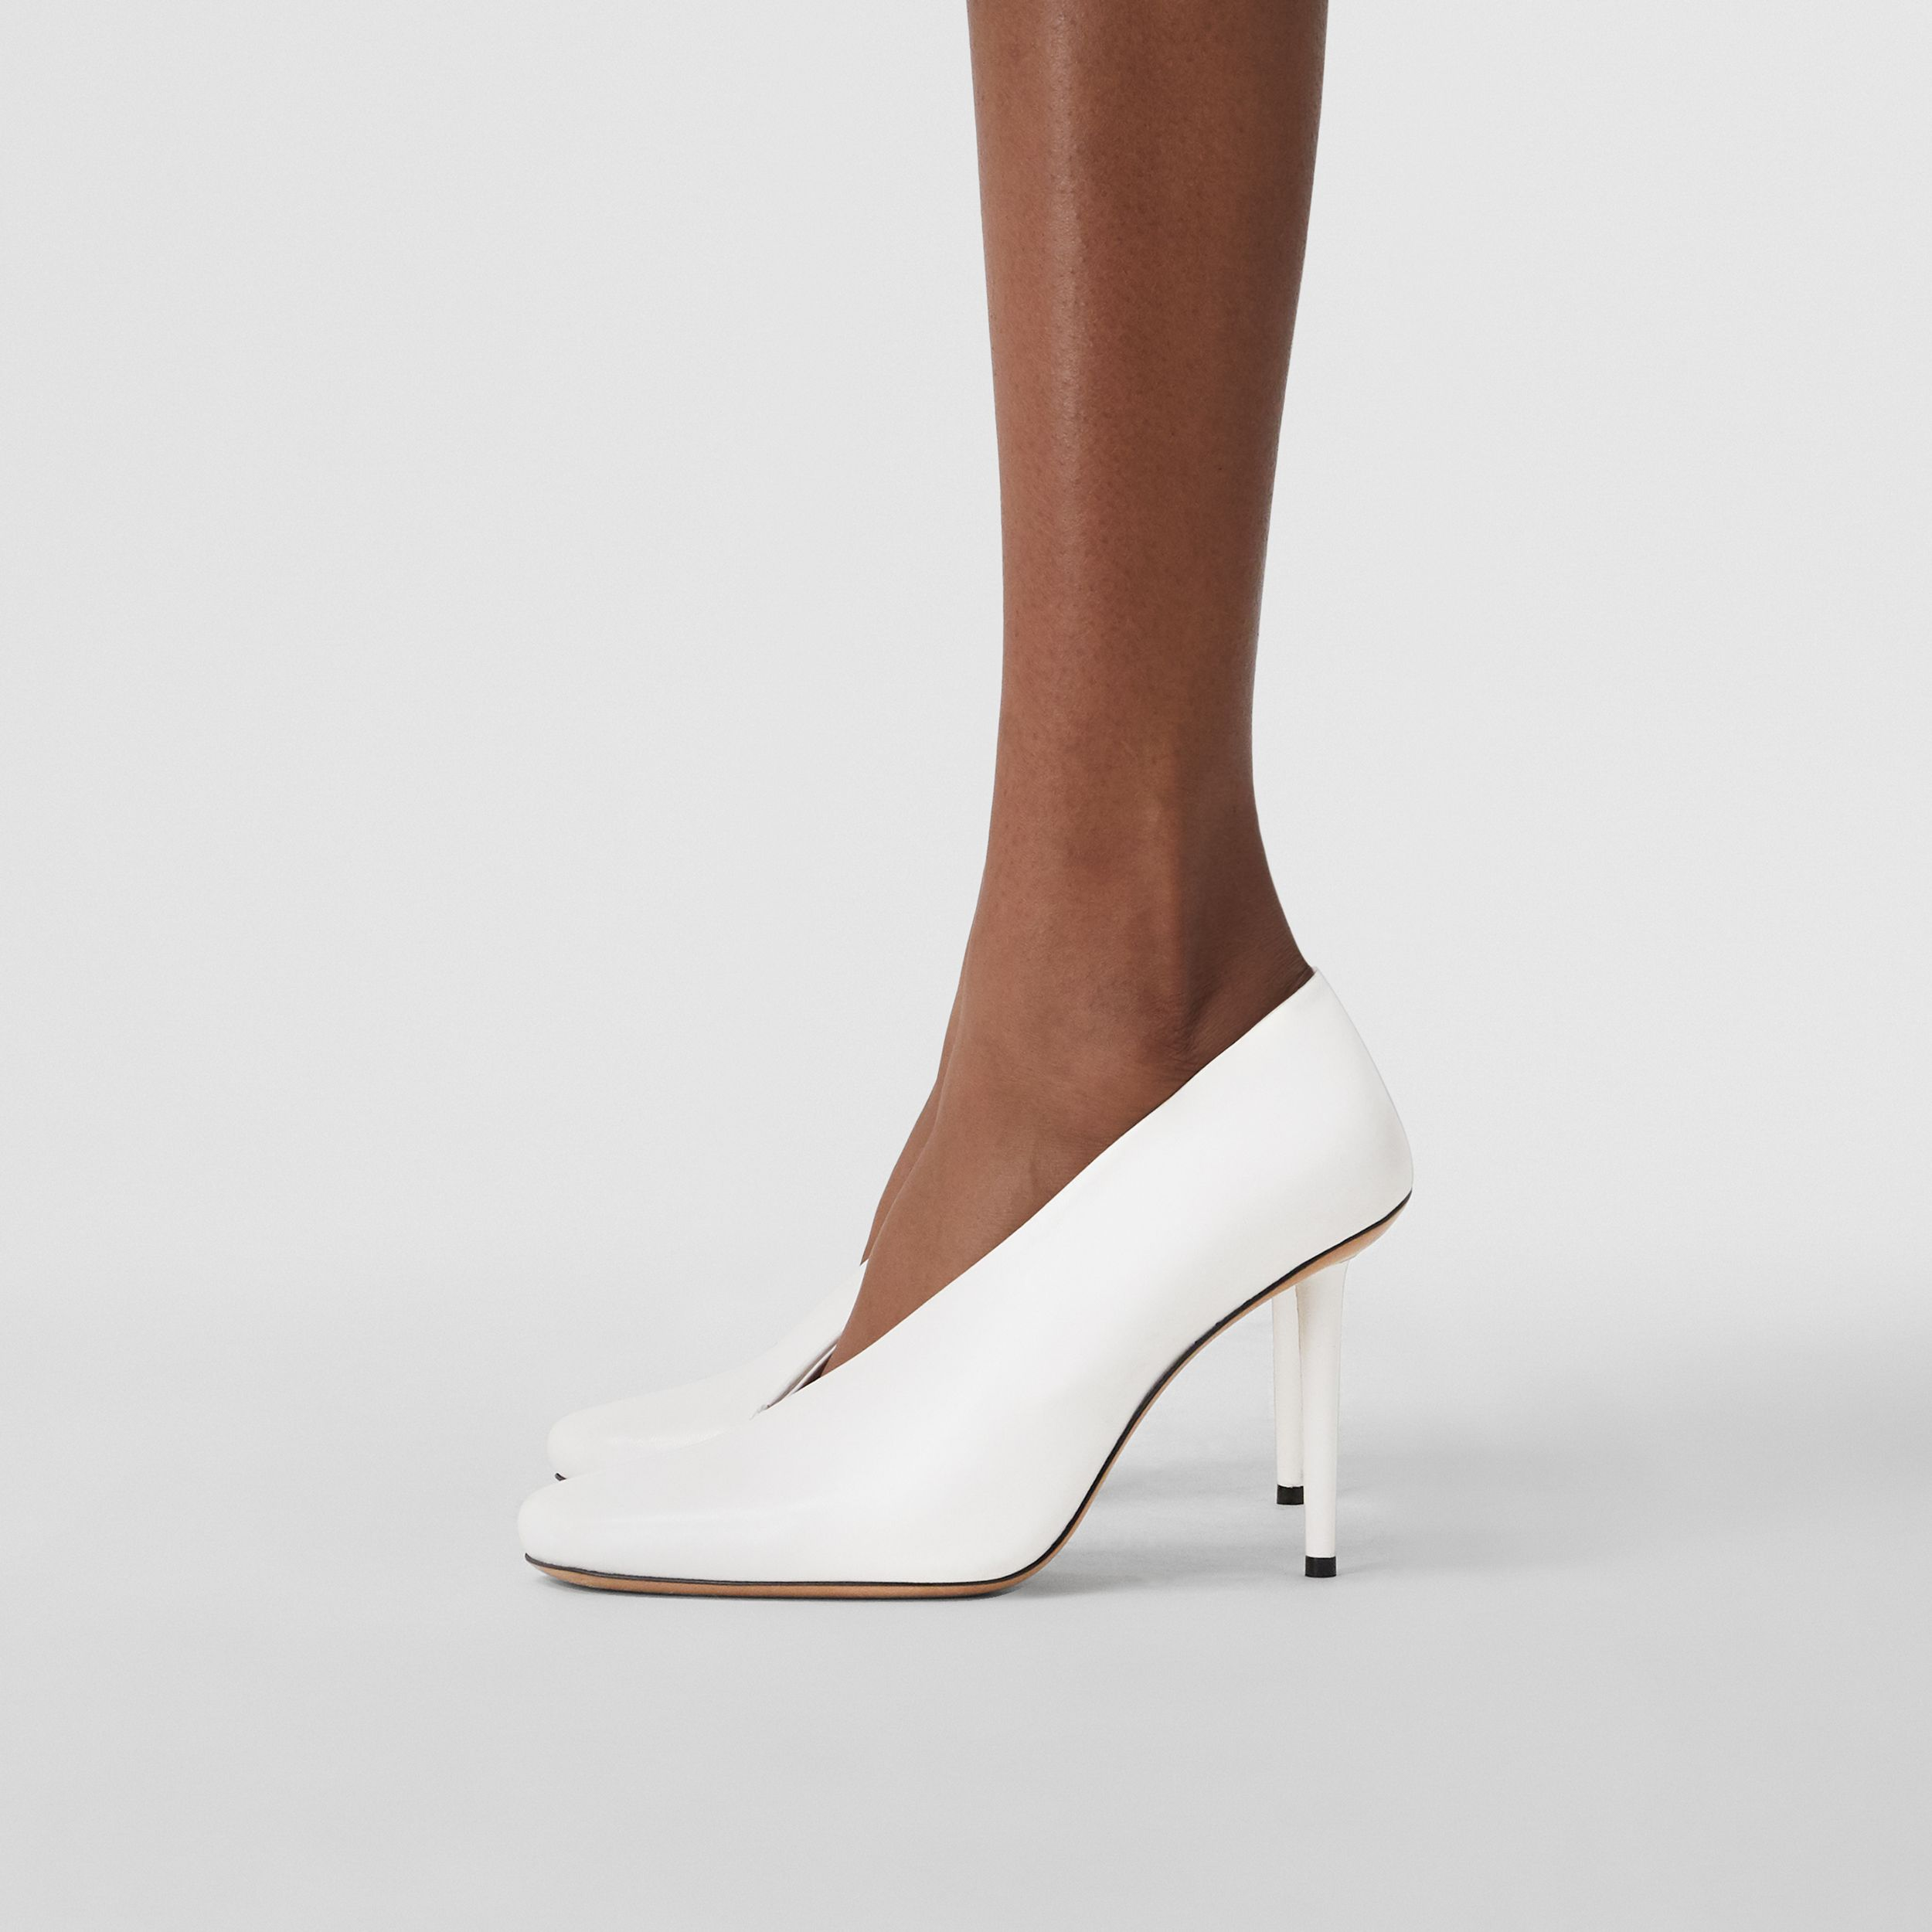 Lambskin Sculptural Pumps in Optic White - Women | Burberry - 2